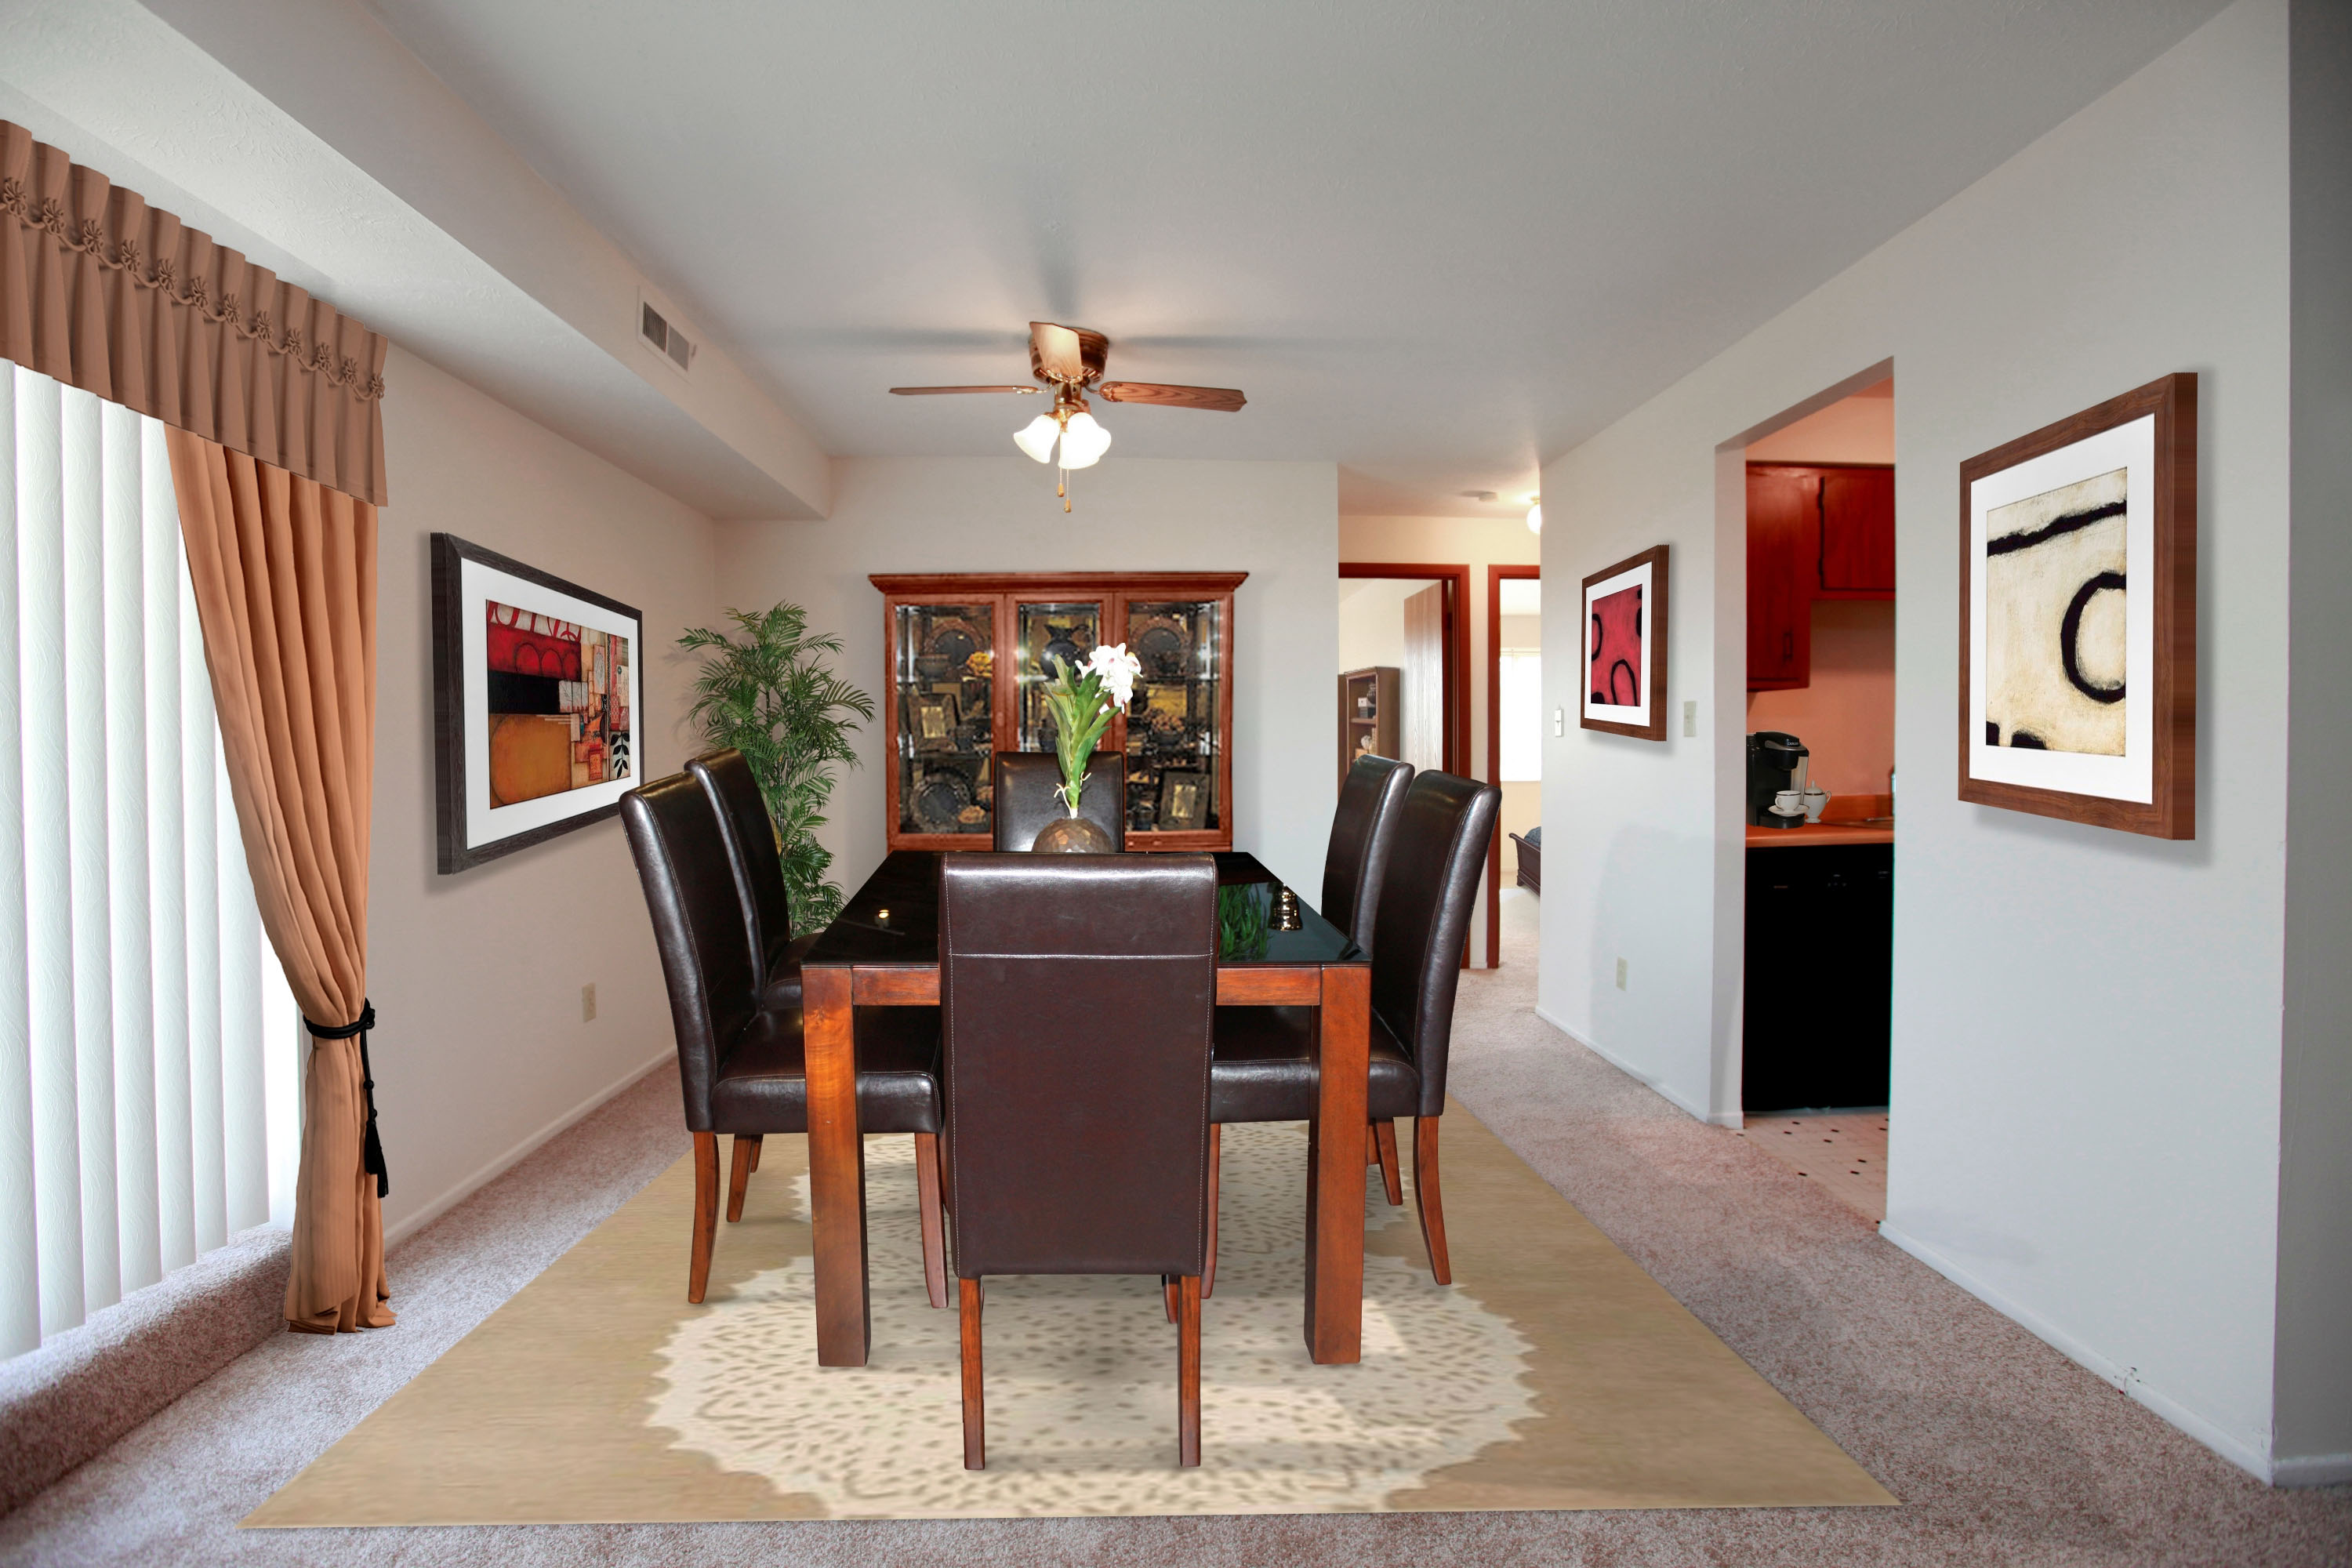 2D Dining Room Furnished at the Greenridge on Euclid Apartments in Euclid, OH